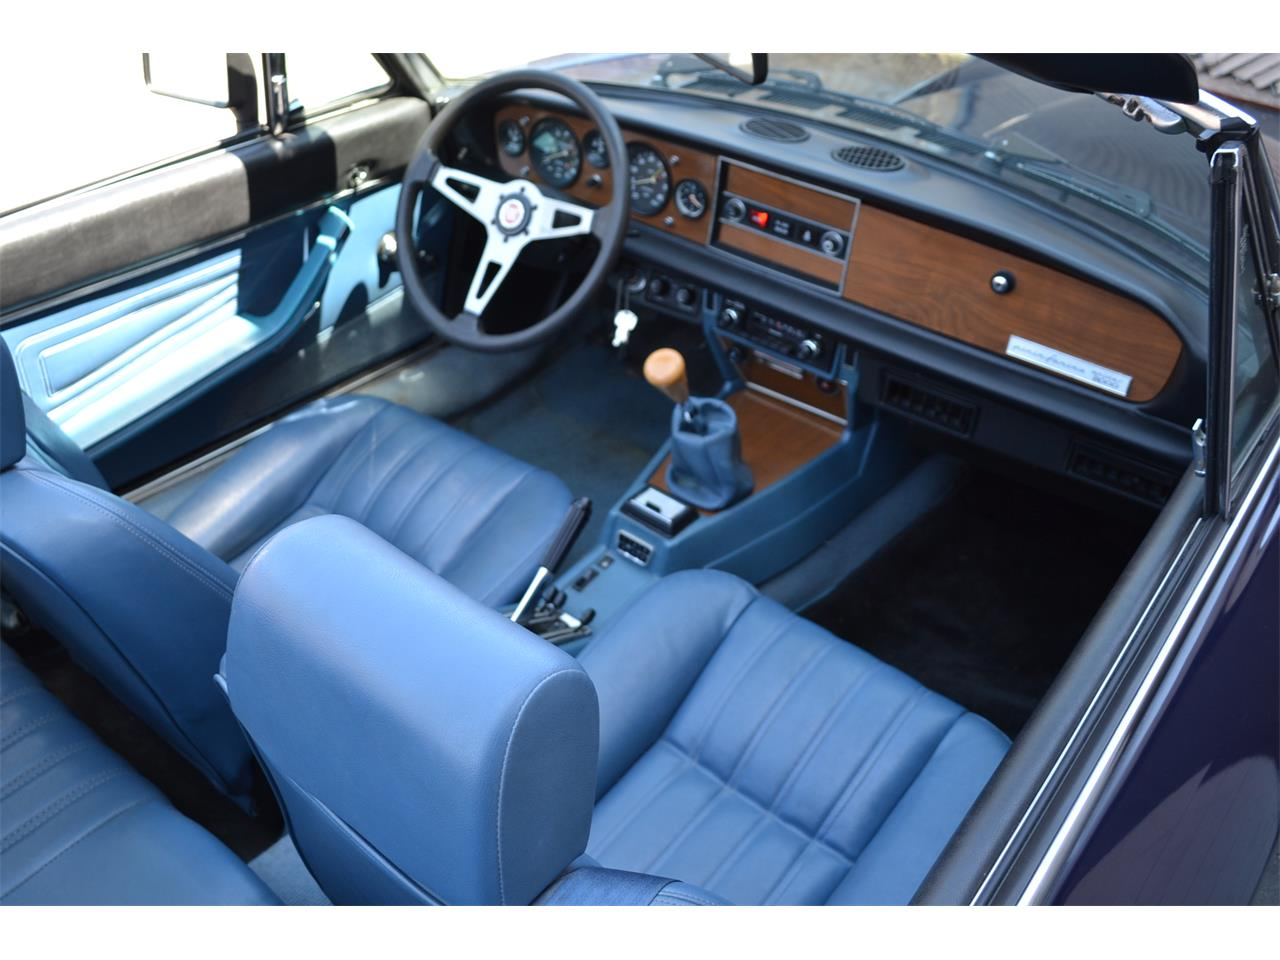 1981 Fiat Spider for sale in Barrington, IL – photo 26